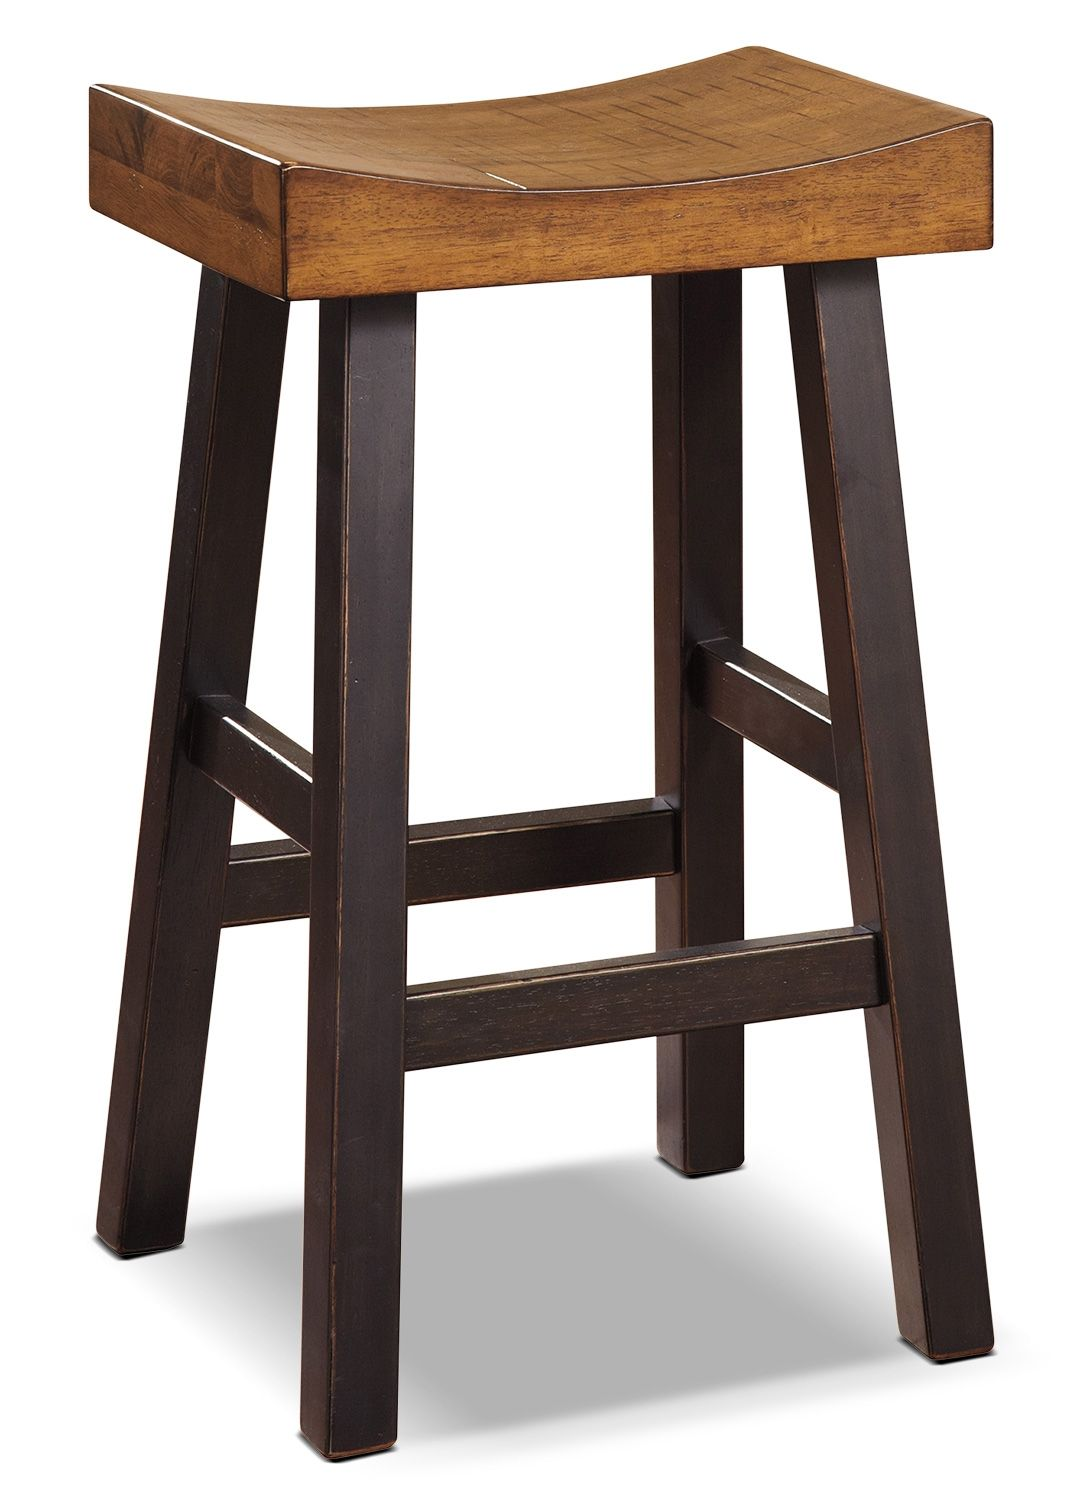 Take A Load Off On The Glosco 30 Inch Saddle Seat Bar Stool Whether